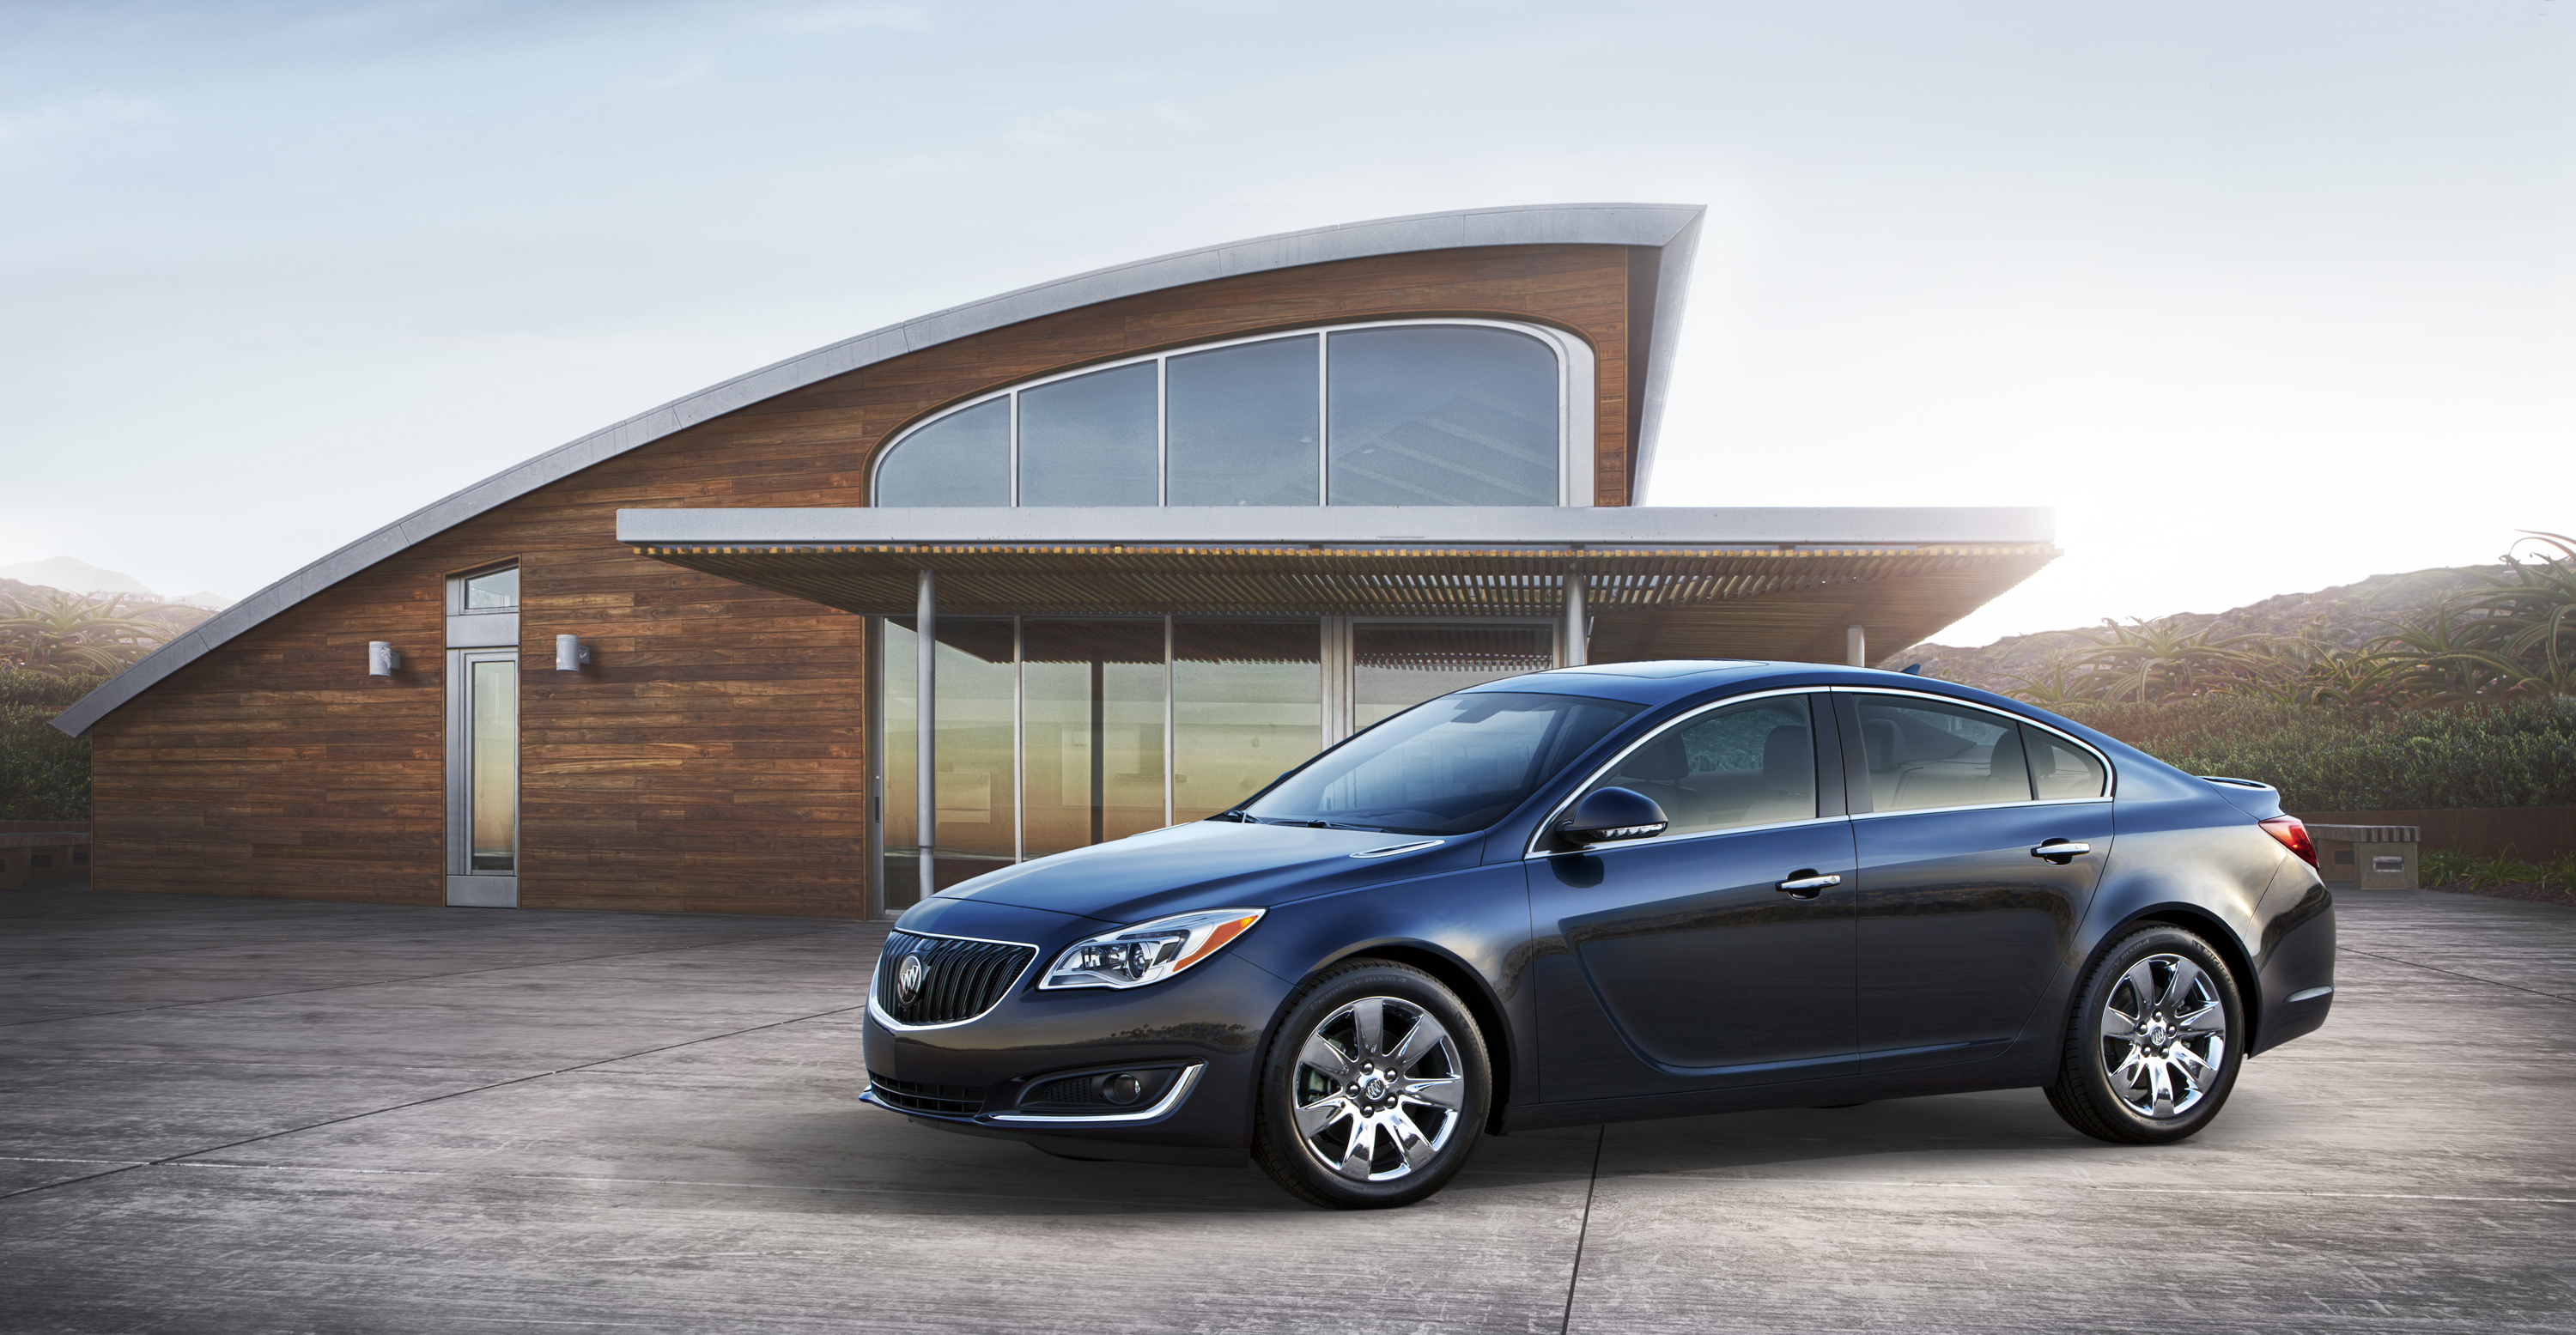 2014 buick regal infused with new technology rh media gm com 78 Buick Regal Buick Turbo V6 Engine